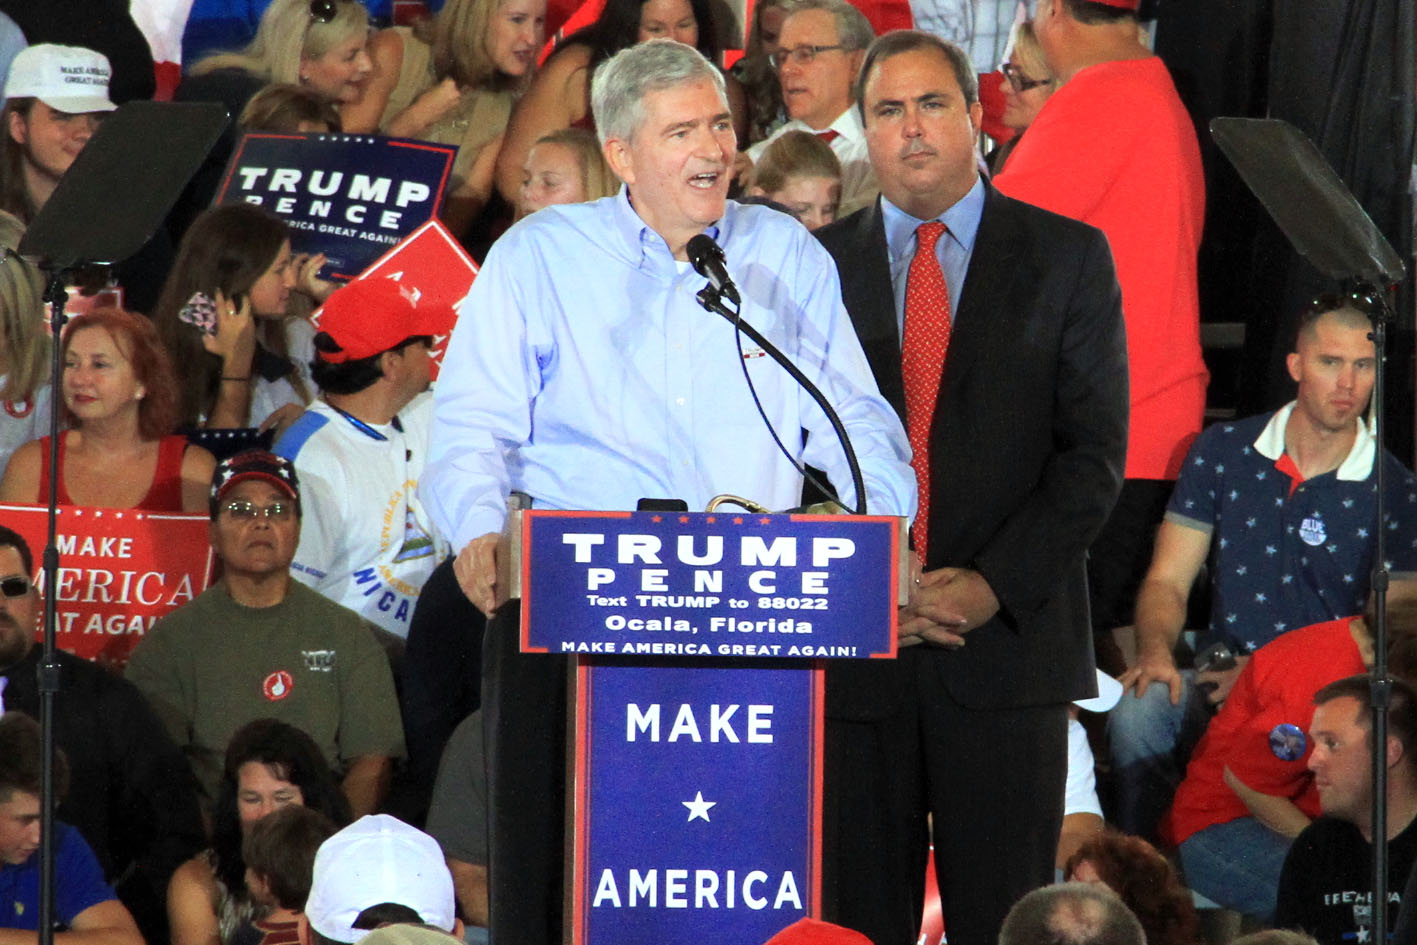 "US Representative Daniel Webster addresses Trump's supporters during his rally Wednesday afternoon. Even after Trump lost the endorsement of numerous high-profile Republicans, including senators, representatives, and governors, over the past week, Webster has continued to support Trump's candidacy. ""I may be in congress, but I'm supporting Donald Trump for president,"" Webster said."